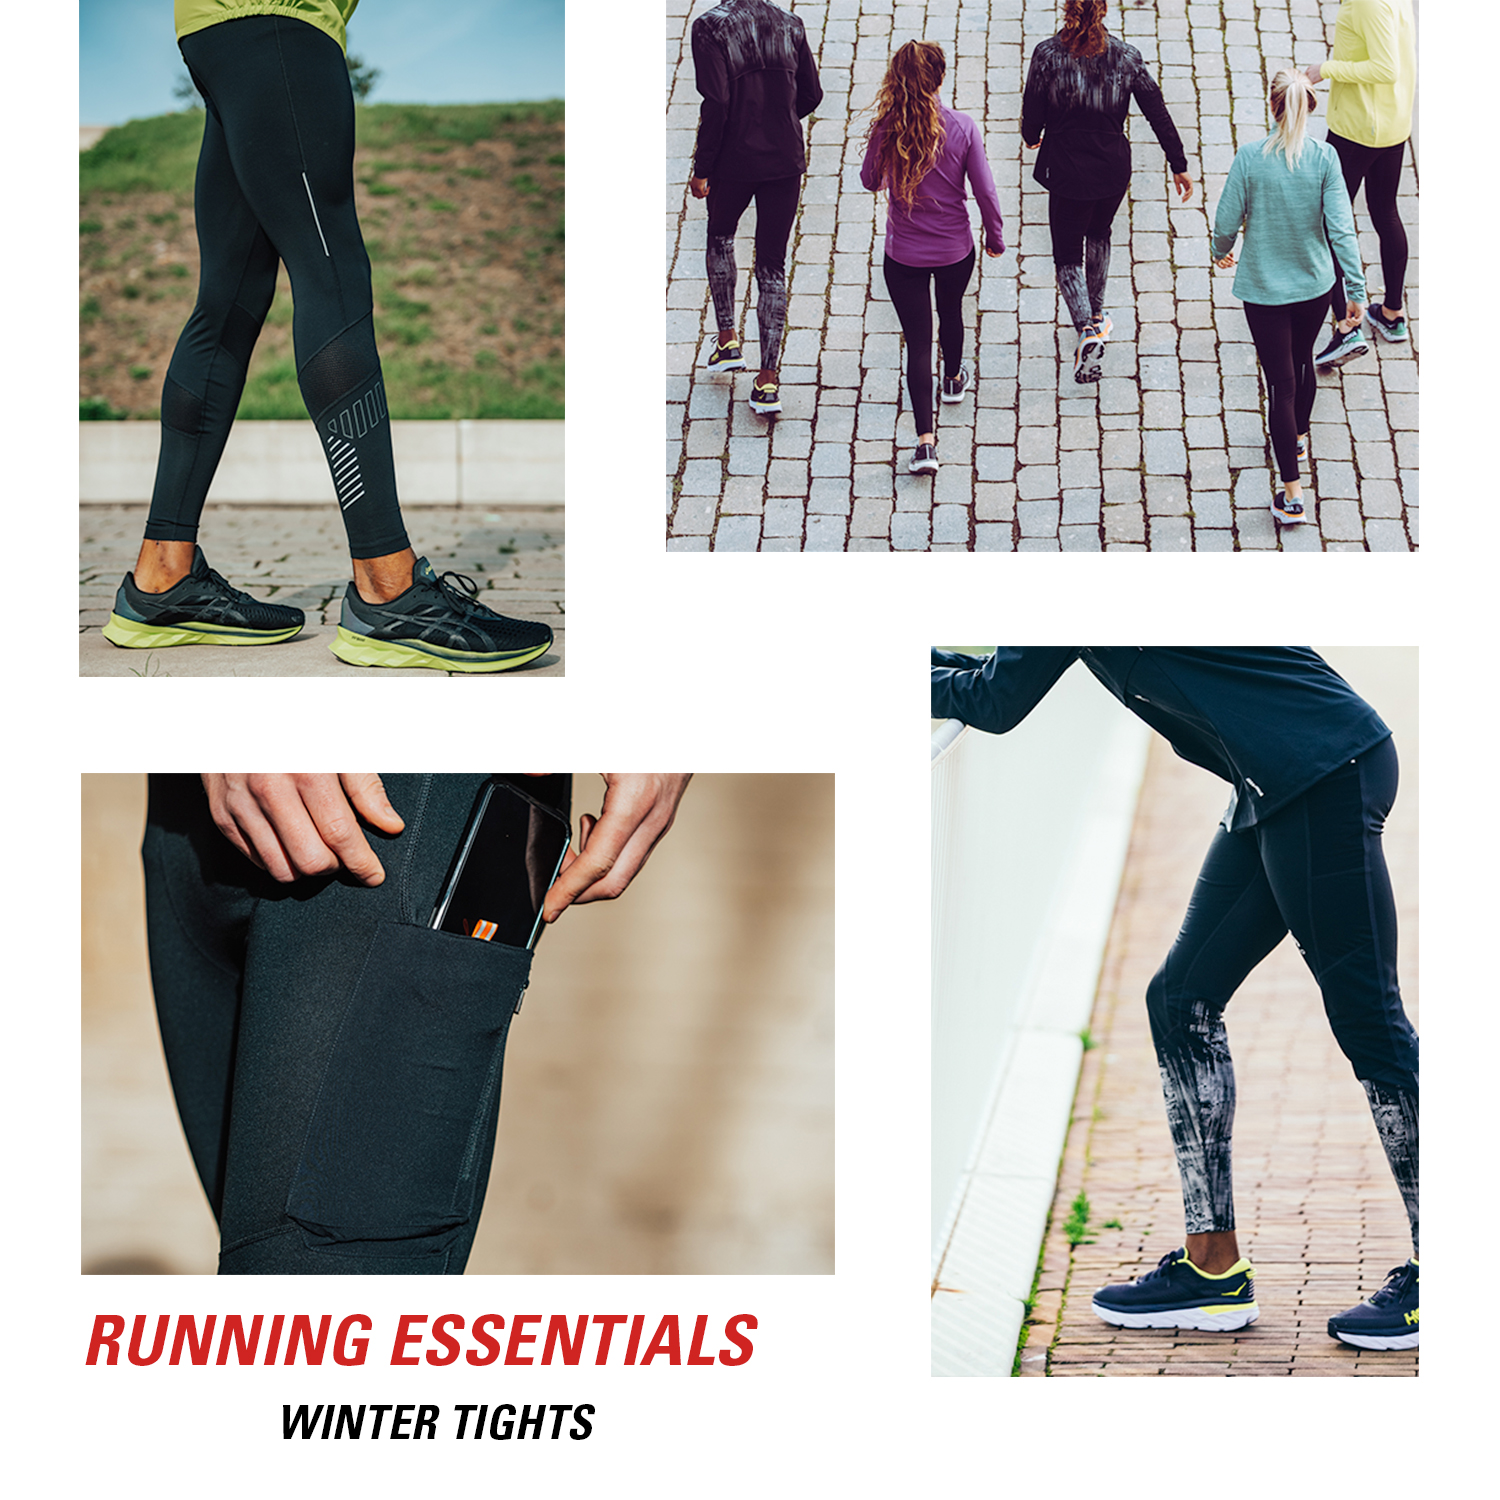 Running essentials: winter tights